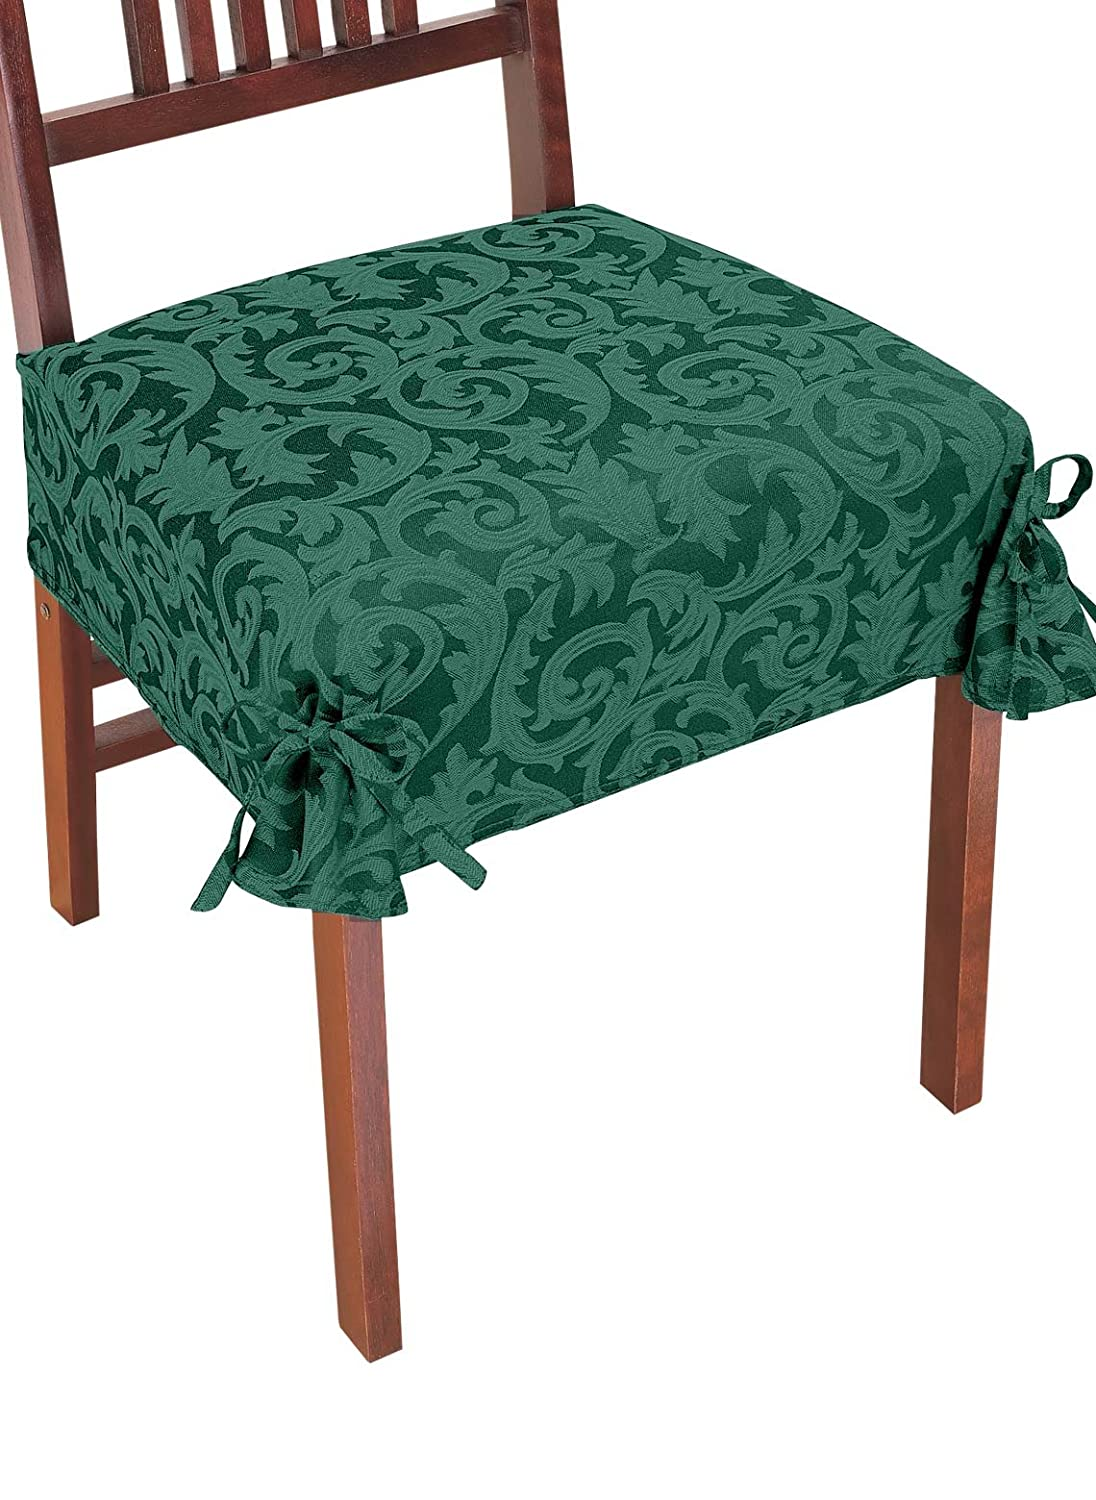 chair seat covers. amazon.com: carol wright gifts damask chair covers, green: kitchen \u0026 dining seat covers i